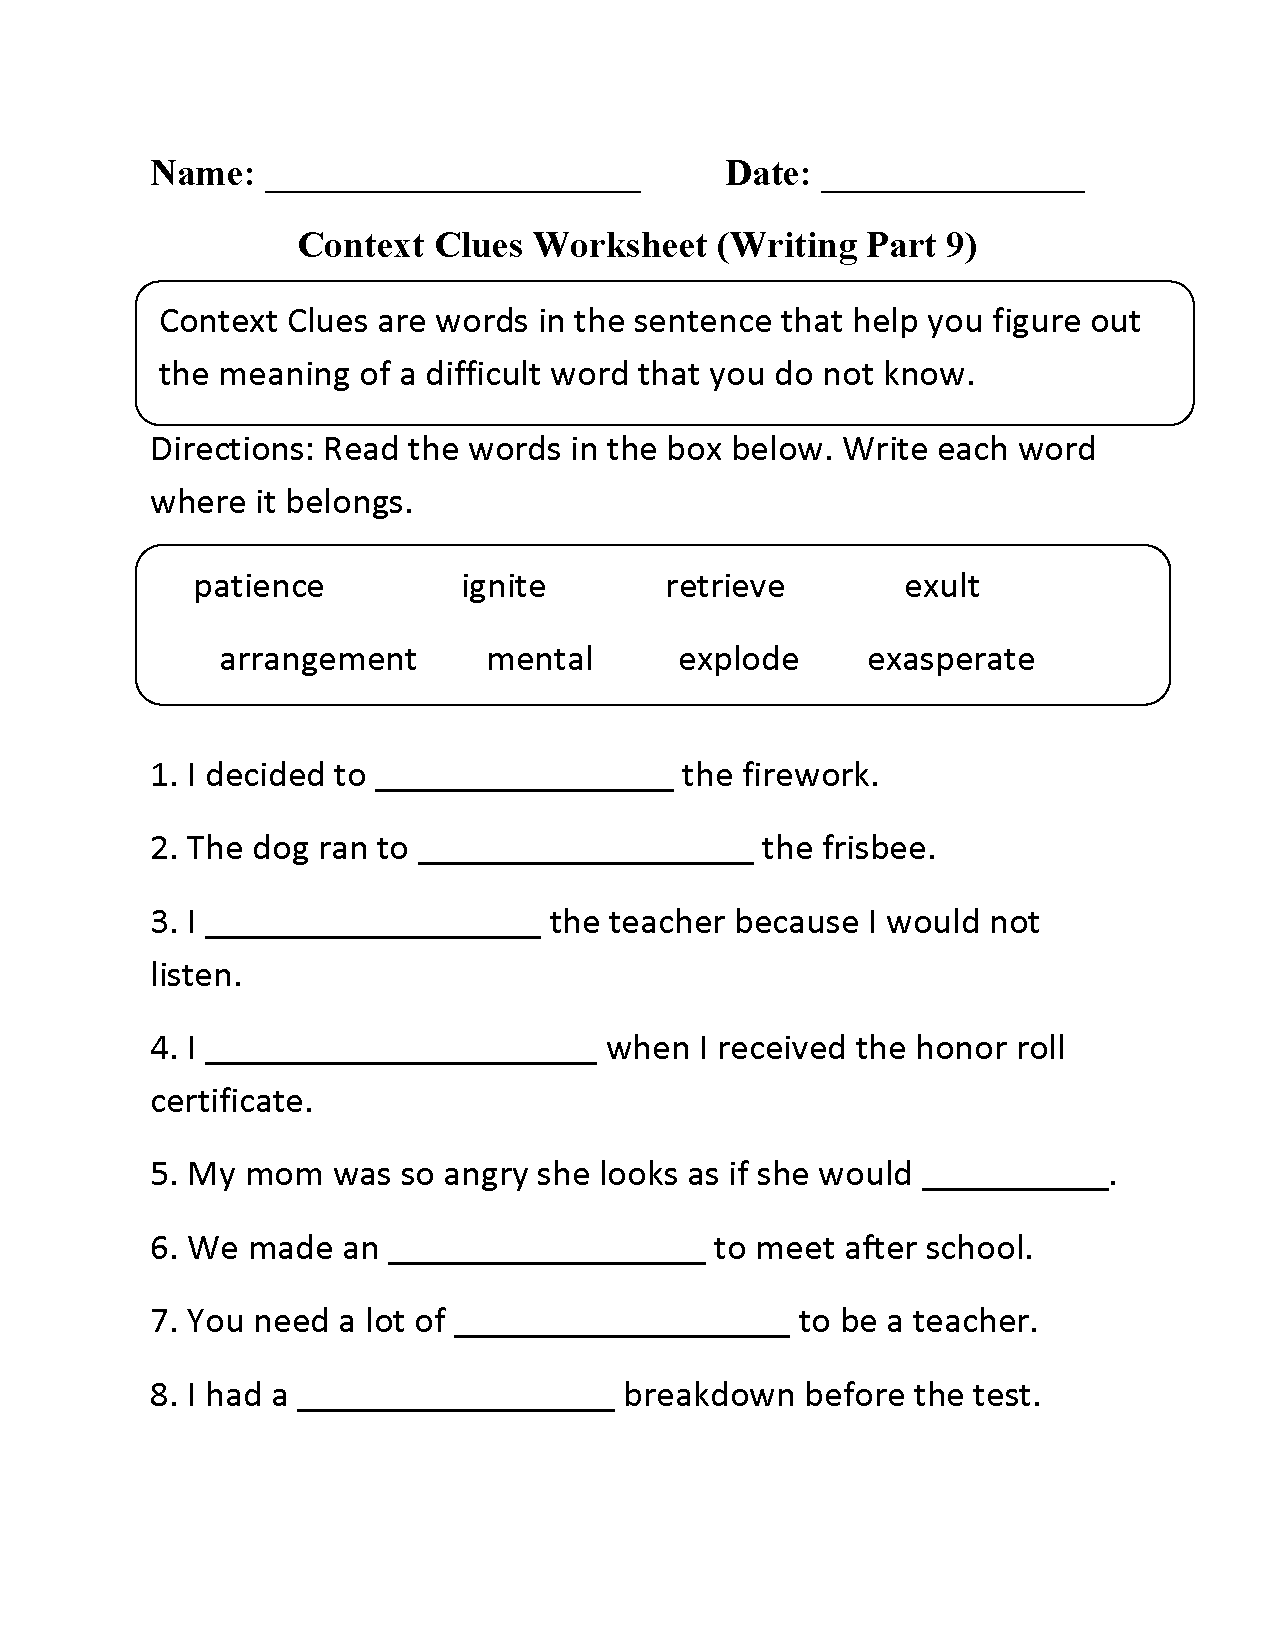 Worksheets Context Clues Worksheet englishlinx com context clues worksheets worksheet writing part 9 intermediate